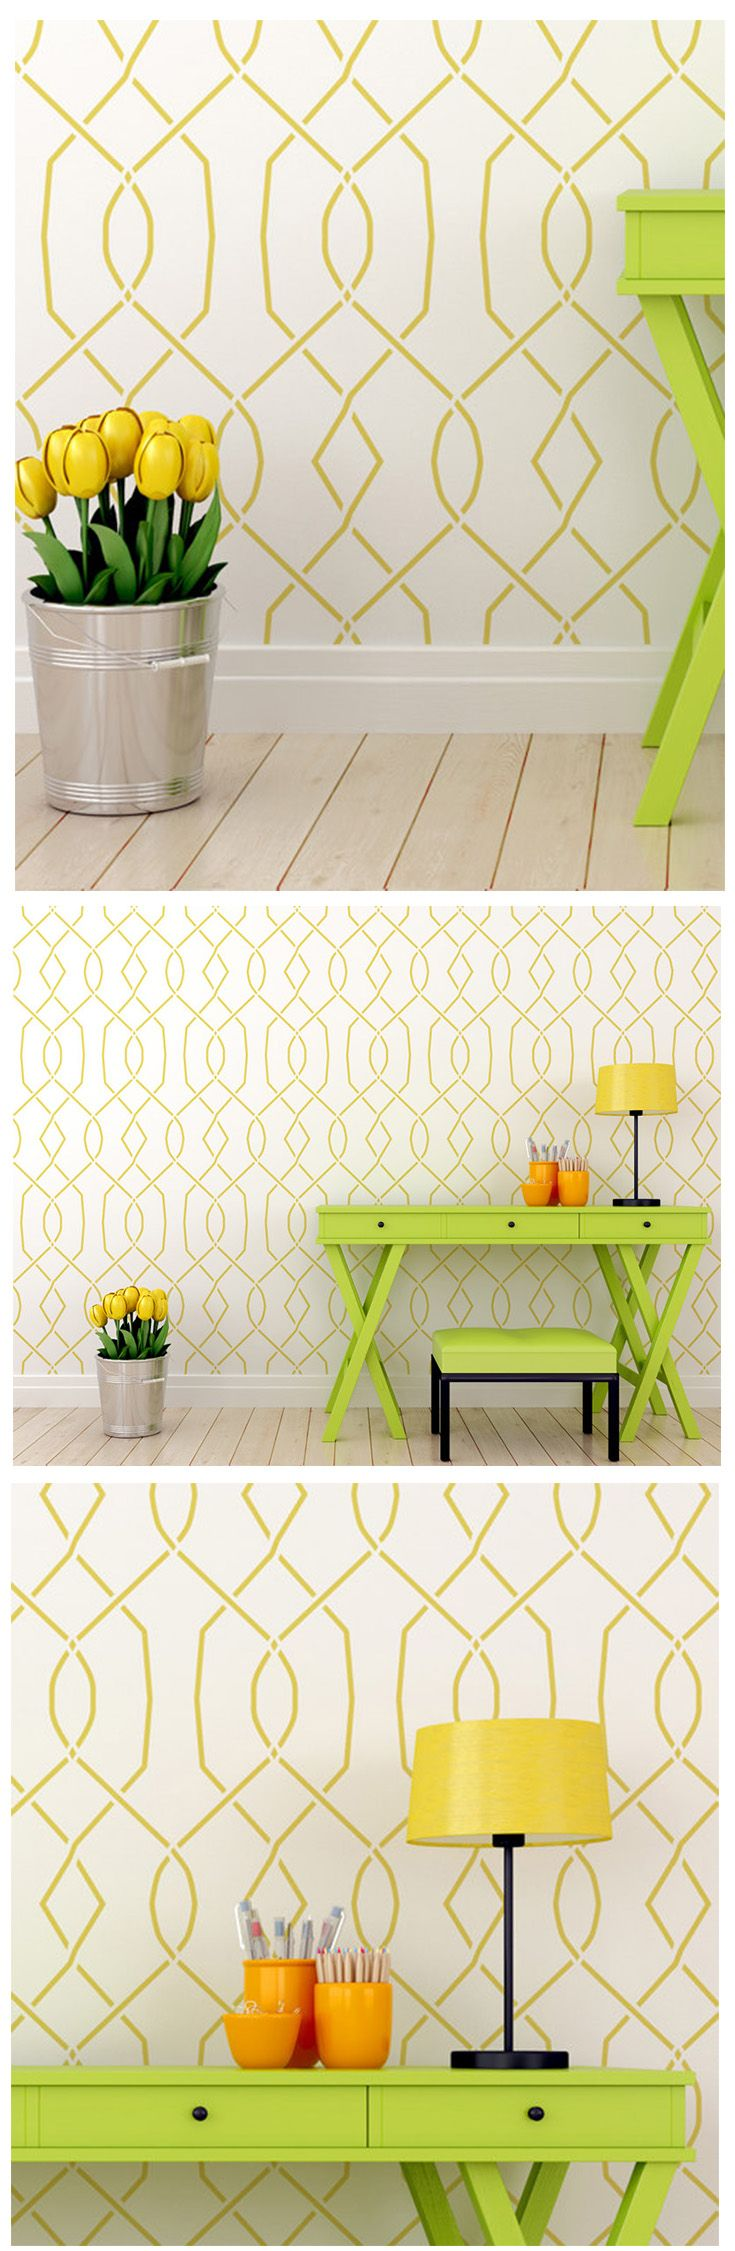 94 best wall stencils images on pinterest wall stenciling trellis wall stencil for a change of your wall look transform your wall into a amipublicfo Image collections